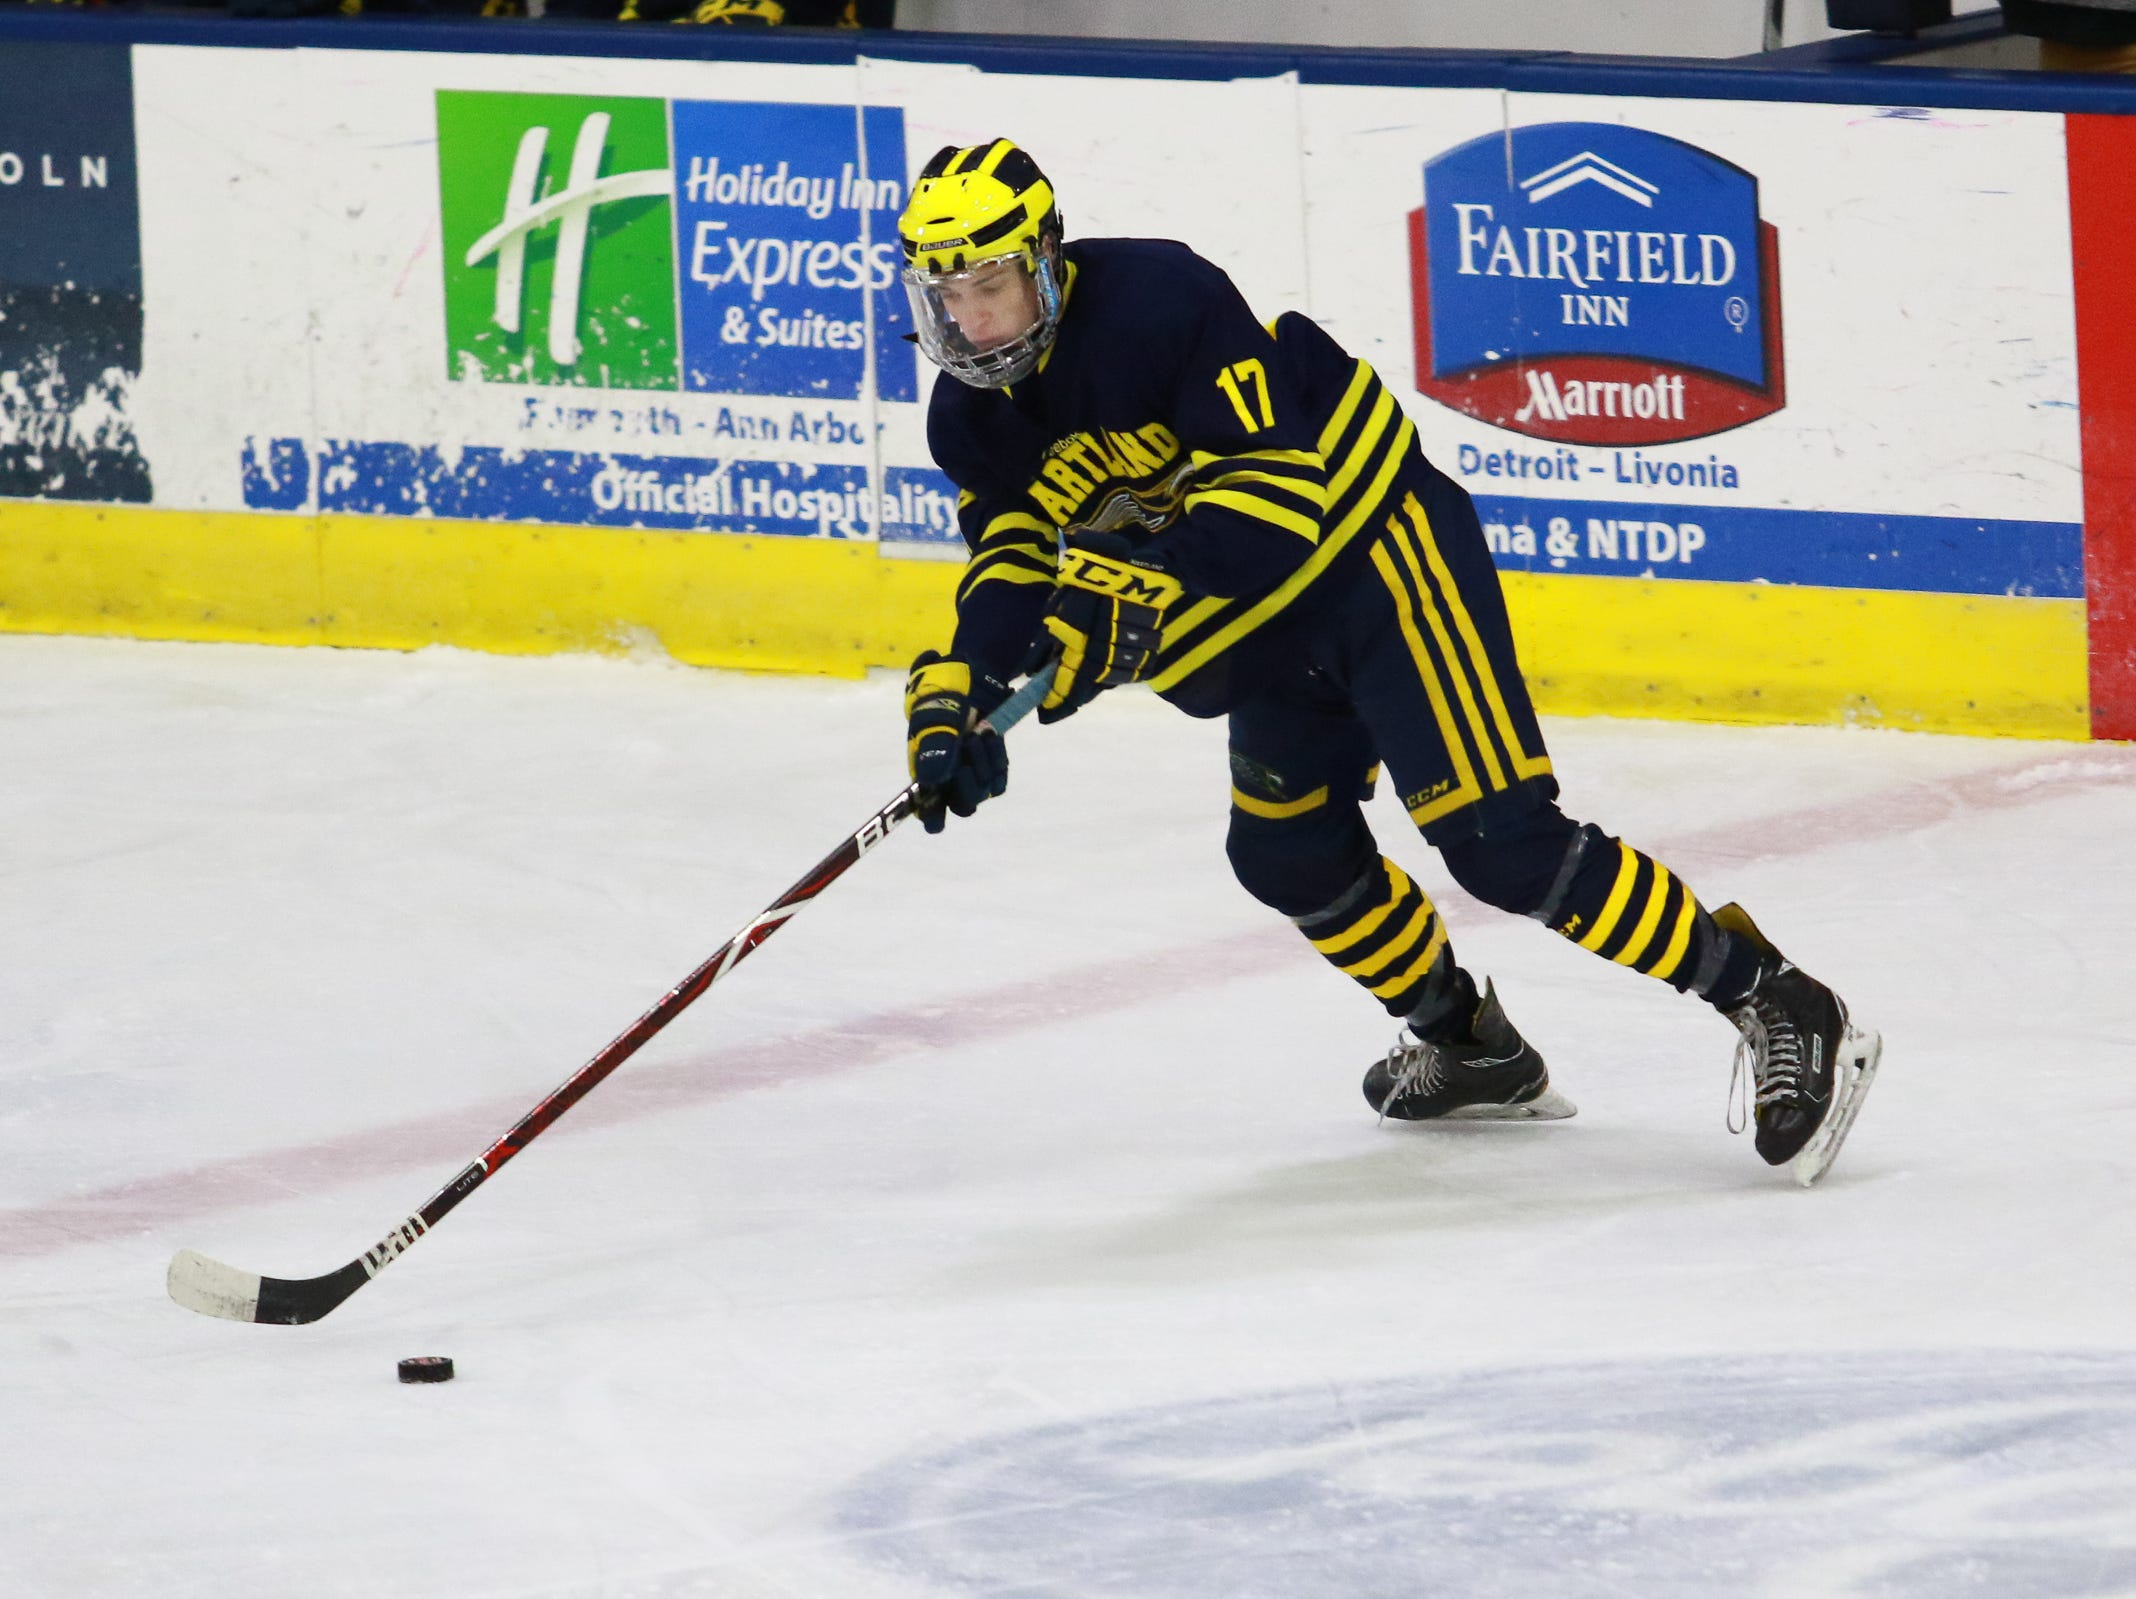 Hartland's Ryan Whitton skates with the puck in a 4-0 victory over Trenton in the state Division 2 championship hockey game on Saturday, March 9, 2019 at USA Hockey Arena.